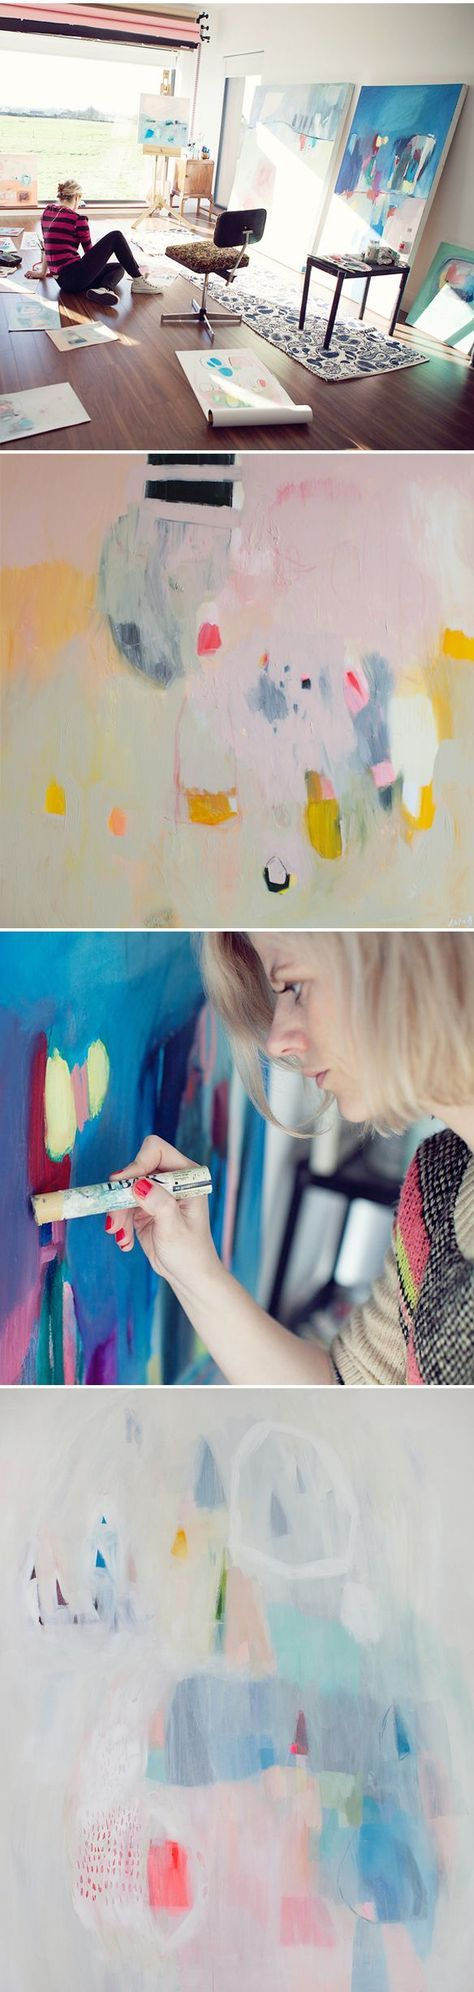 Lola Donoghue - Her abstract paintings and the most incredible studio I've ever seen... in Ireland no less. #artist #studio